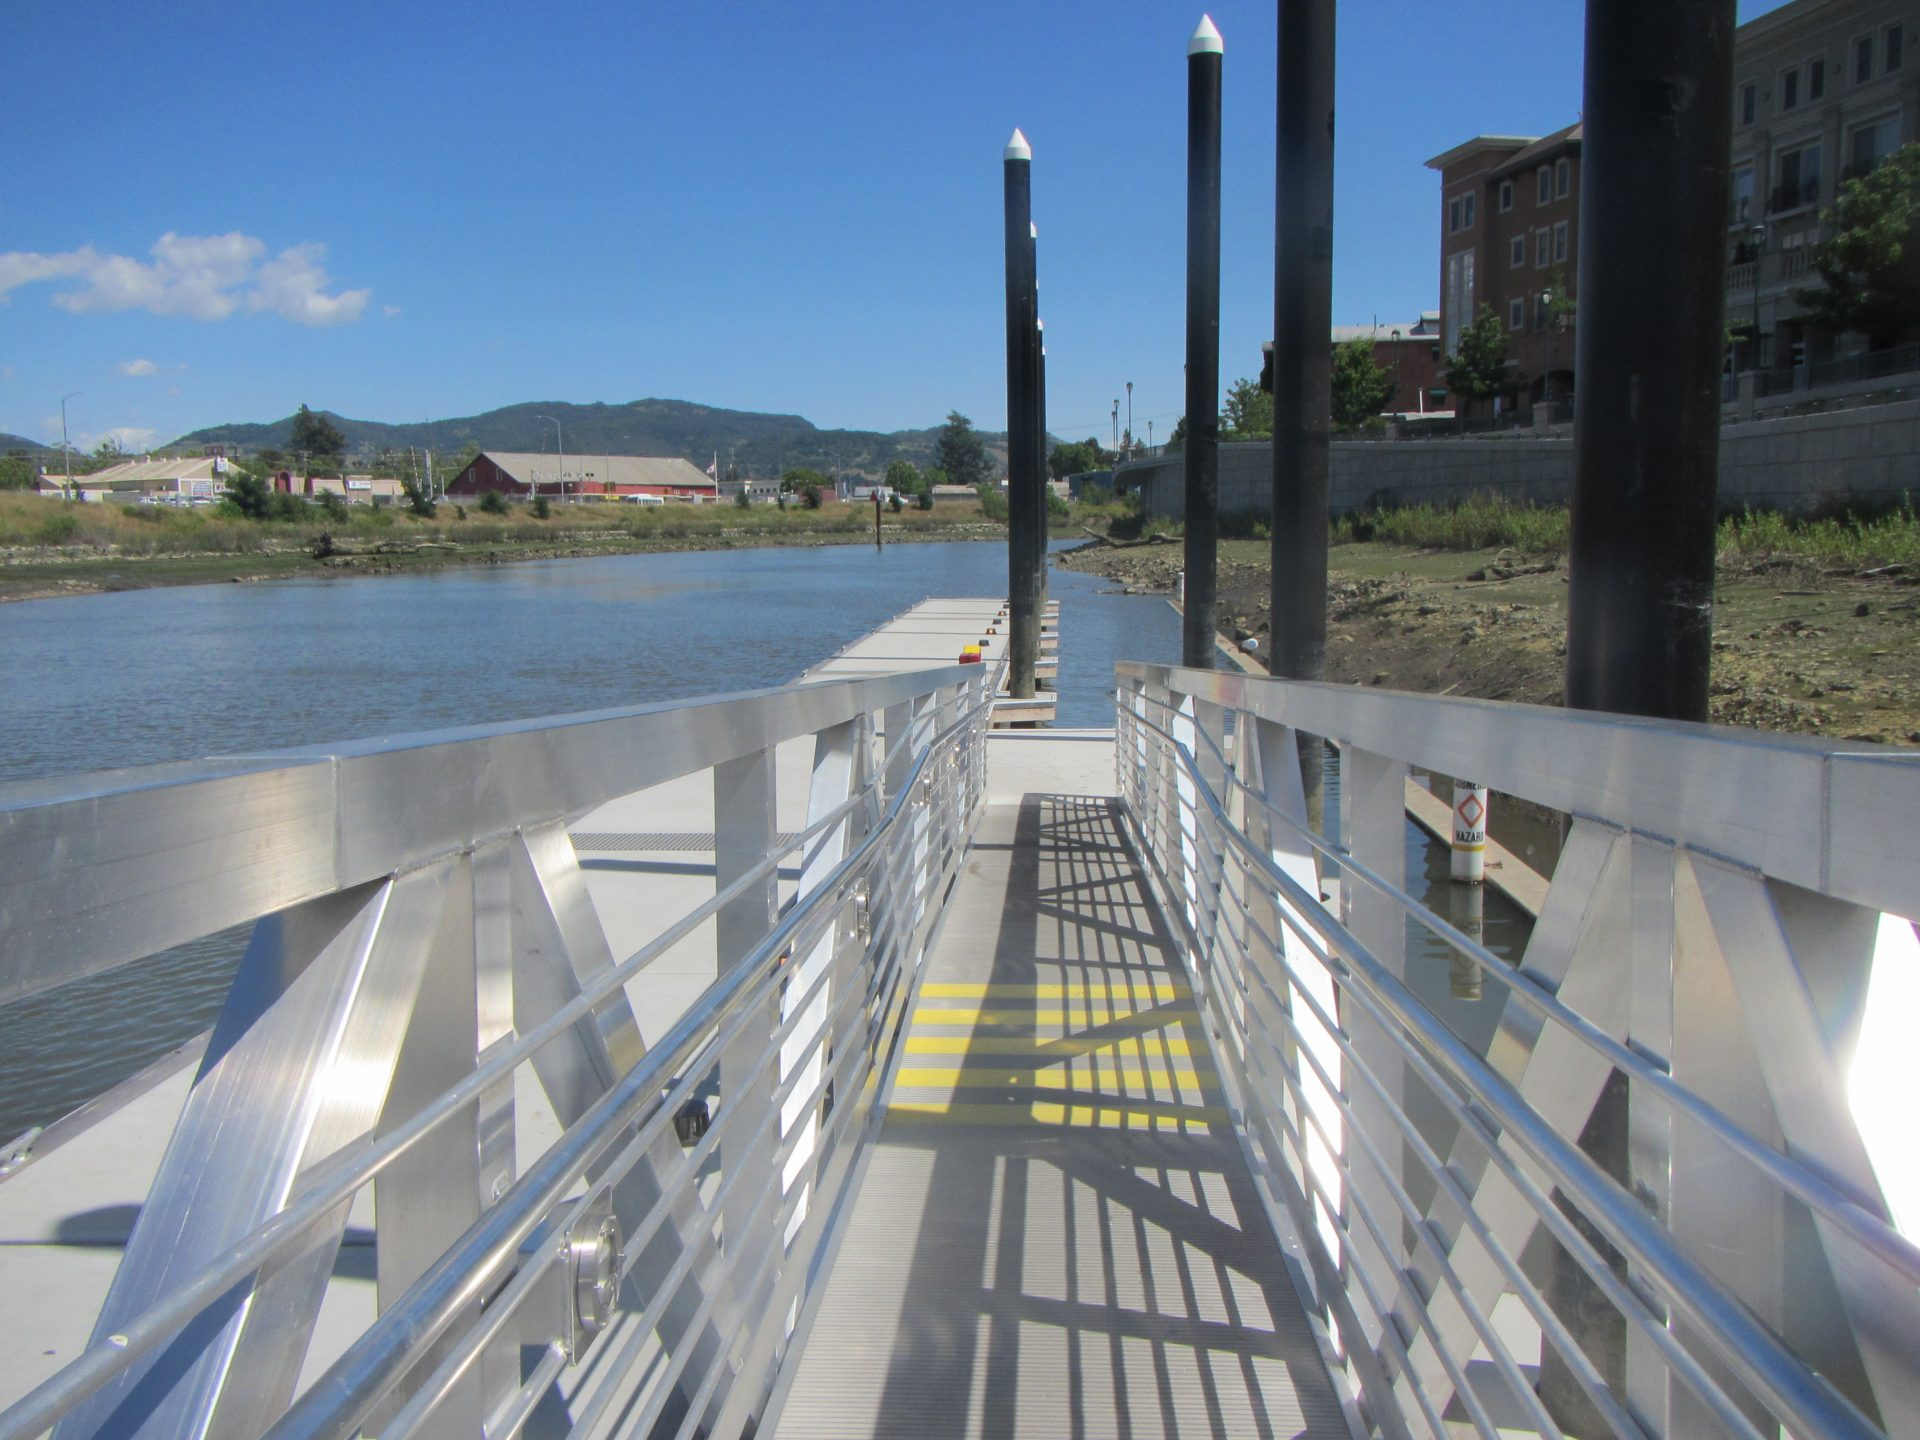 Ramp to floating dock